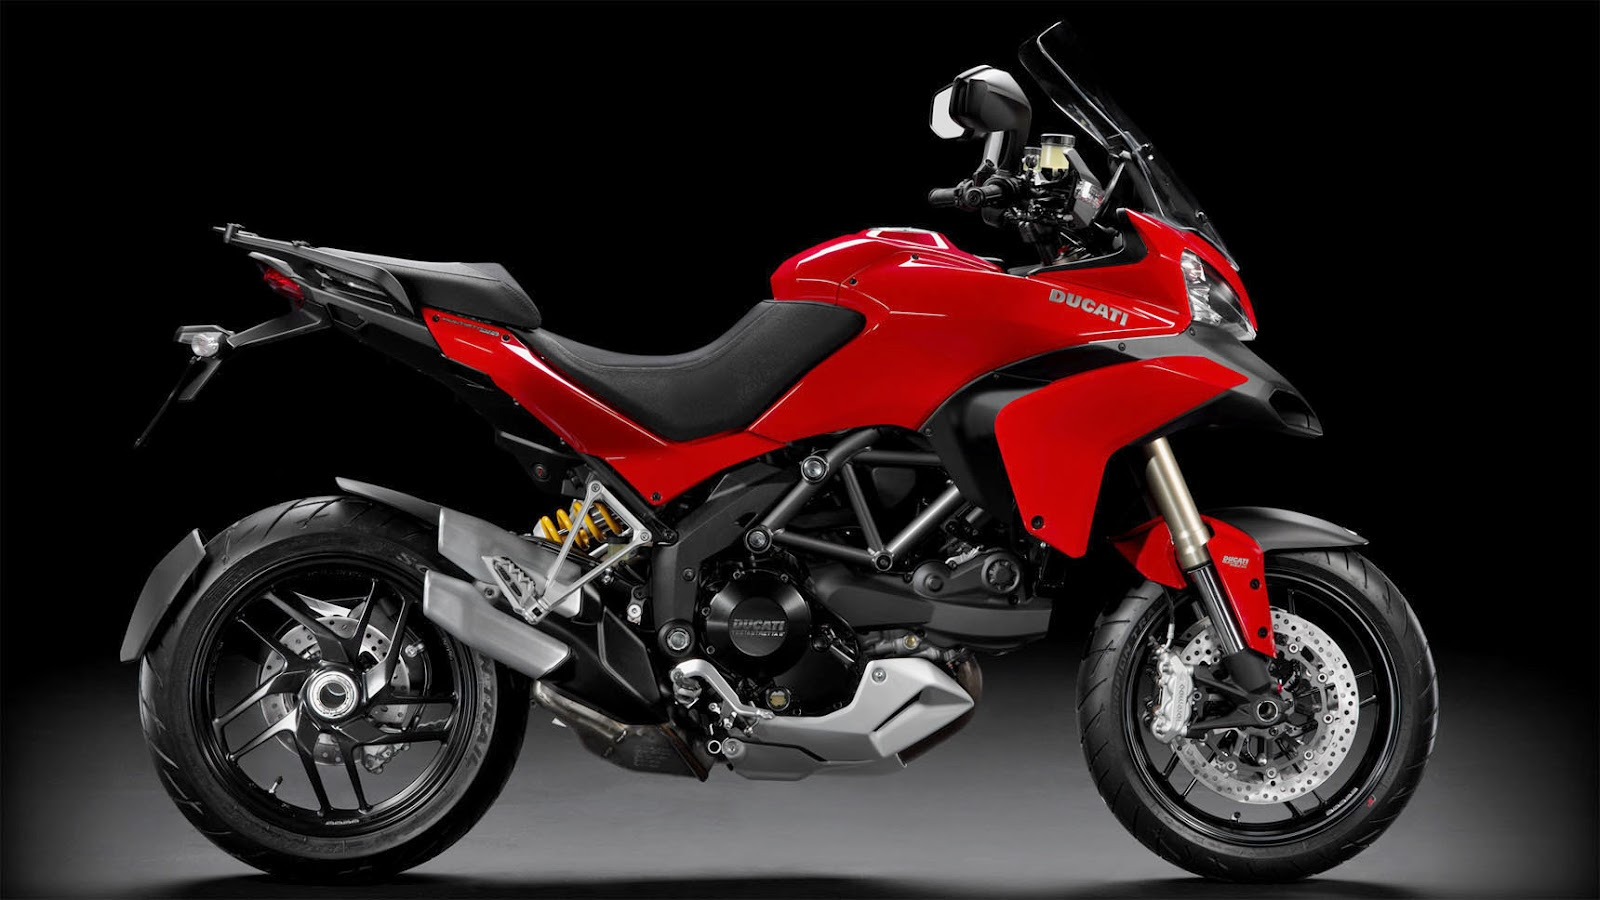 Wiring Diagram Together With Ducati Multistrada 1200 Wiring Diagram